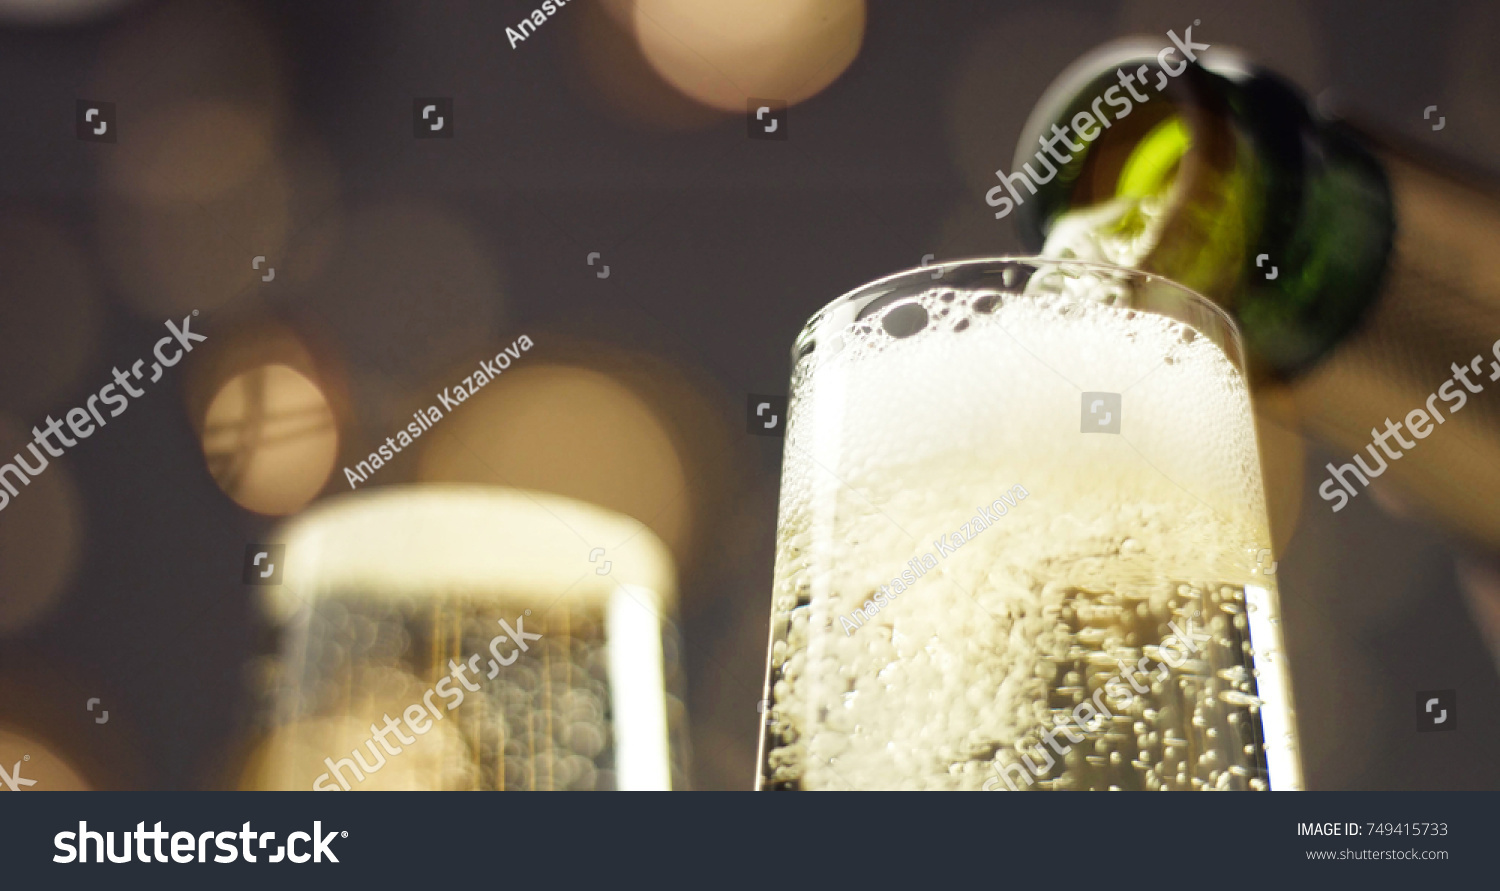 Bottle of sparkling wine with three flute glasses with bubbles floating up on gray backgrounds with Christmas lights #749415733